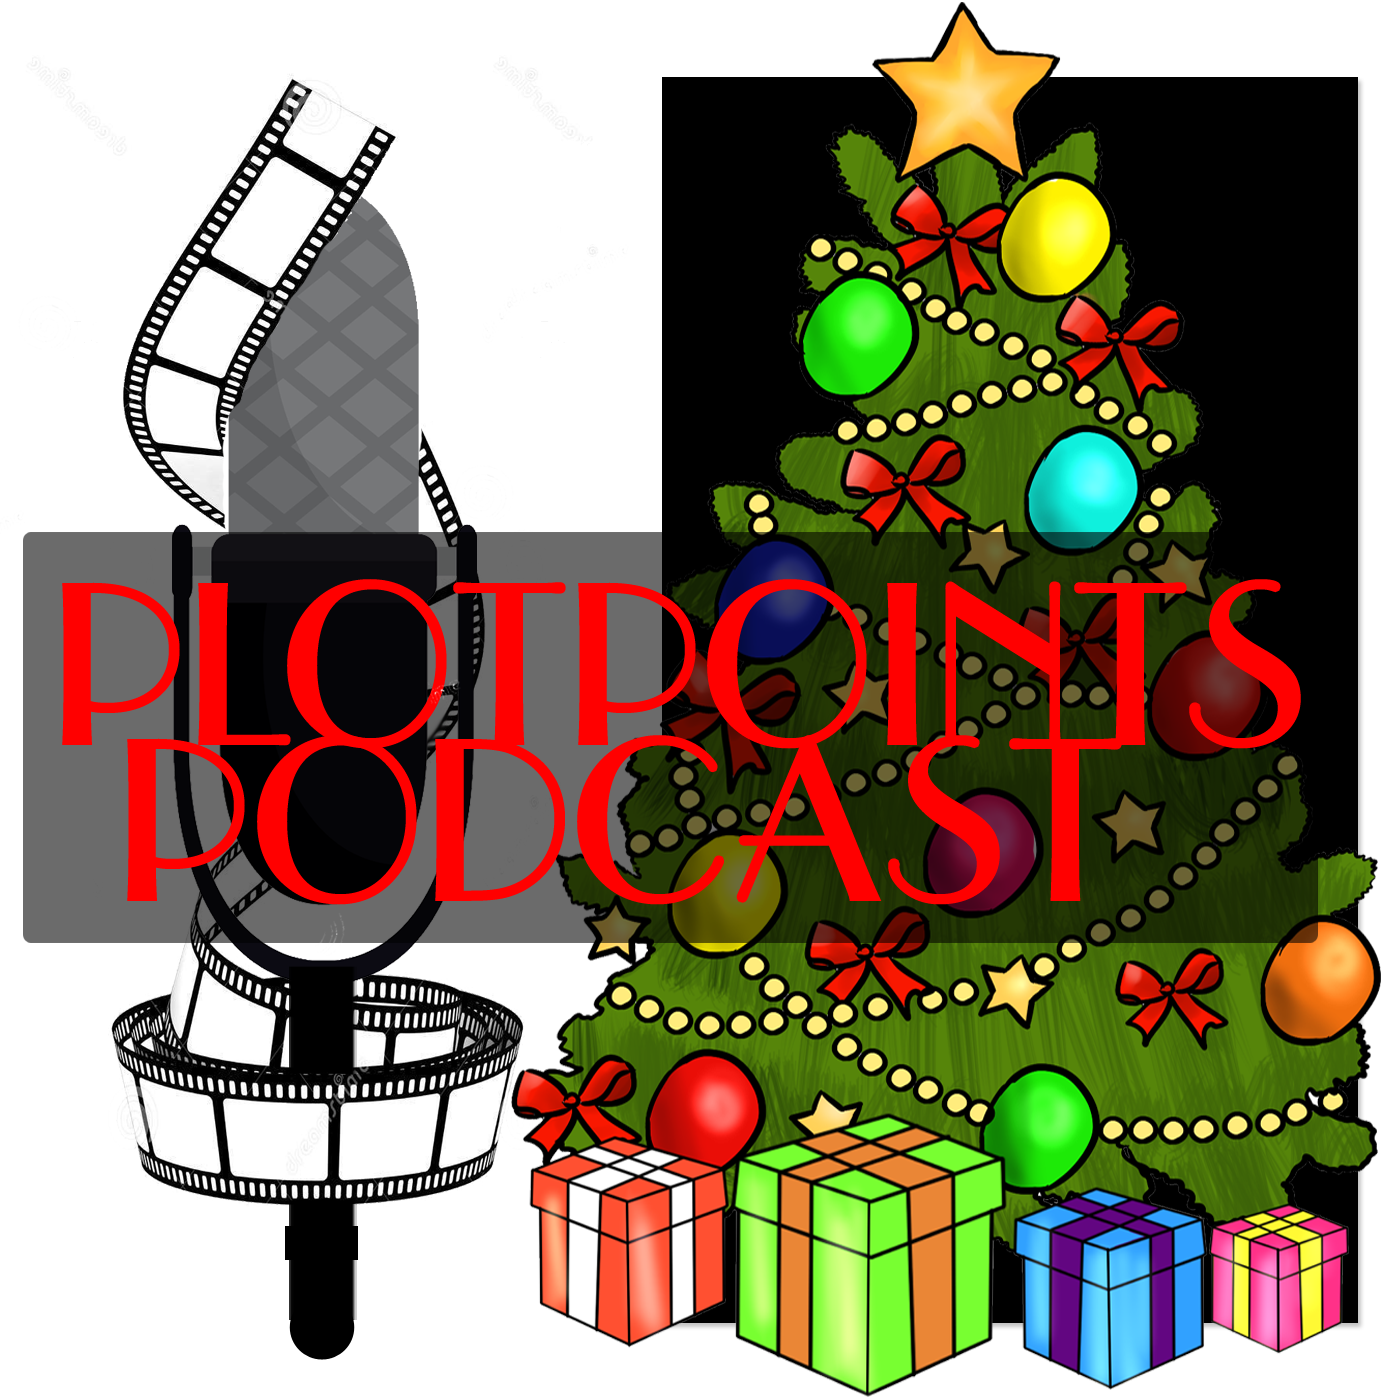 plotpoints podcast Christmas logo